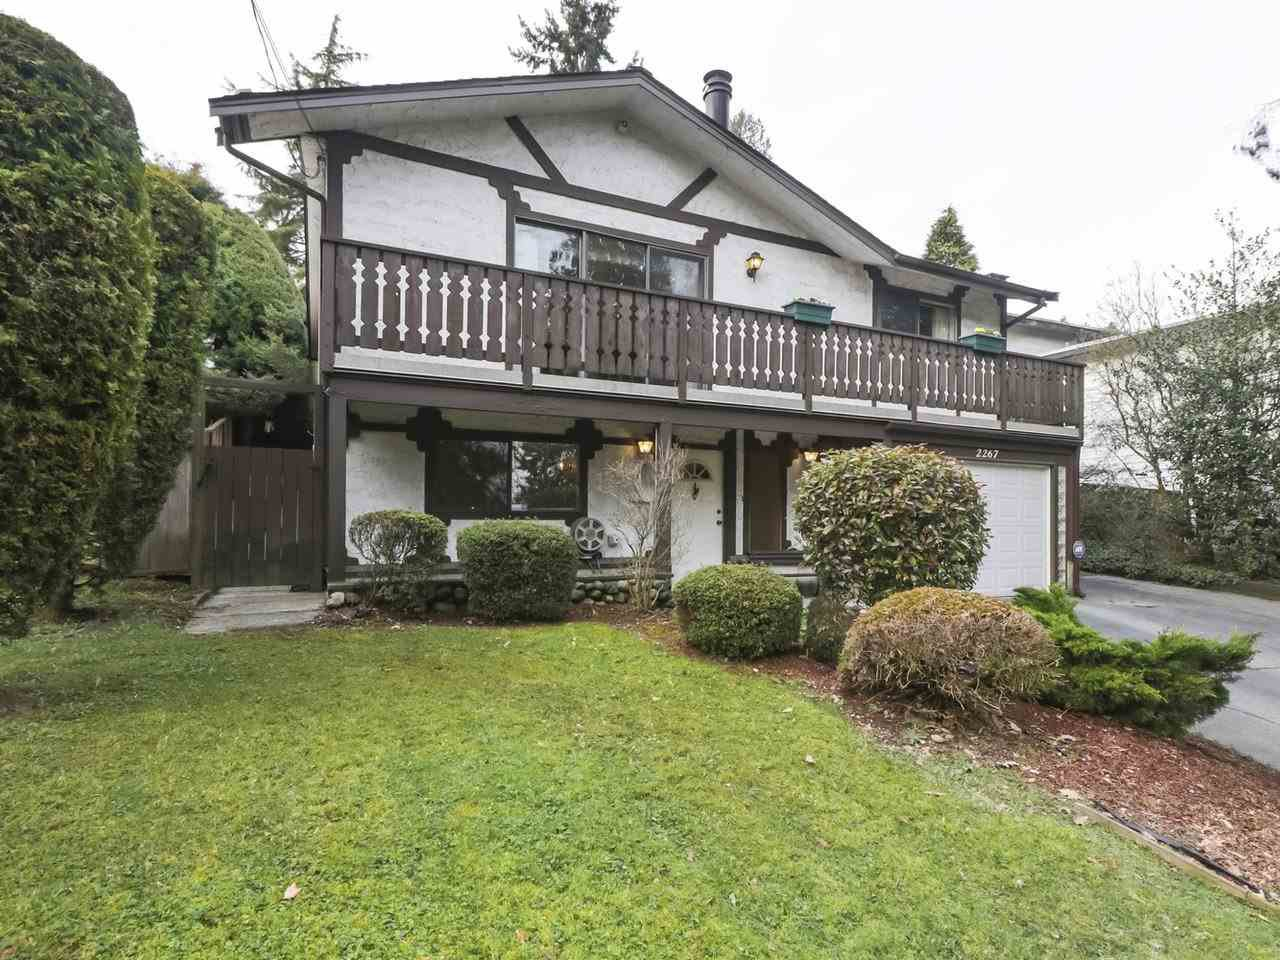 Main Photo: 2267 CAPE HORN AVENUE in Coquitlam: Cape Horn House for sale : MLS®# R2439351